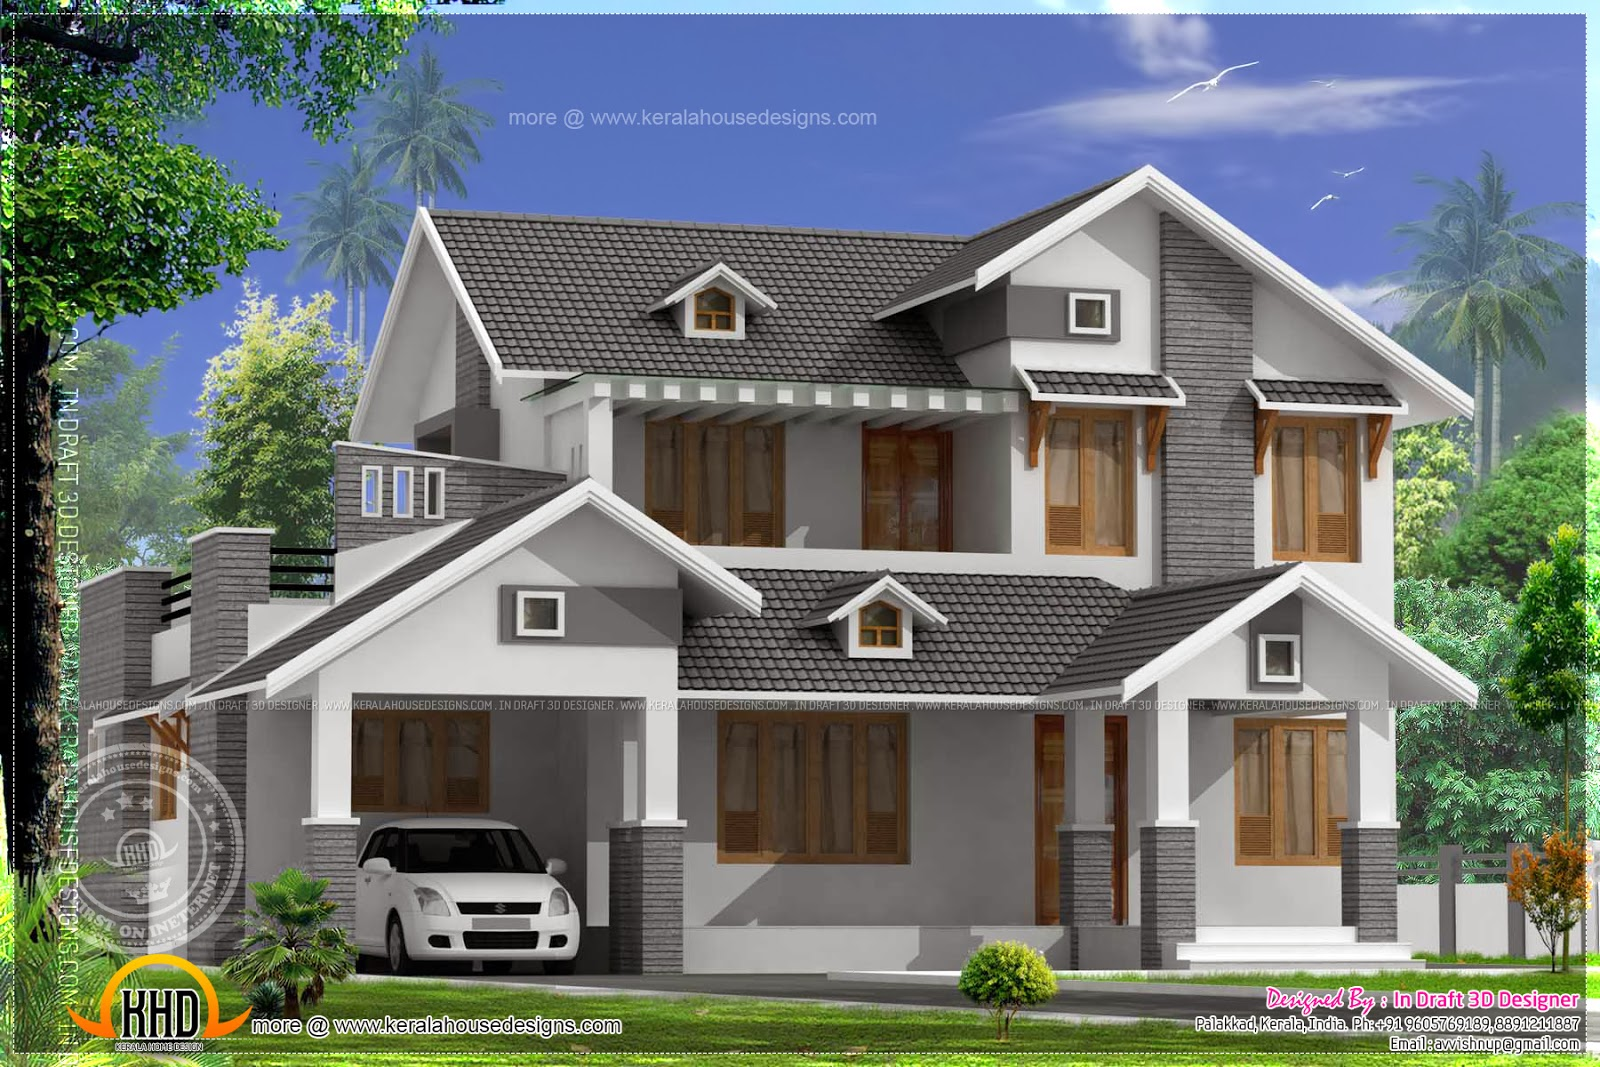 2367 Square Feet Sloping Roof Home Kerala Design